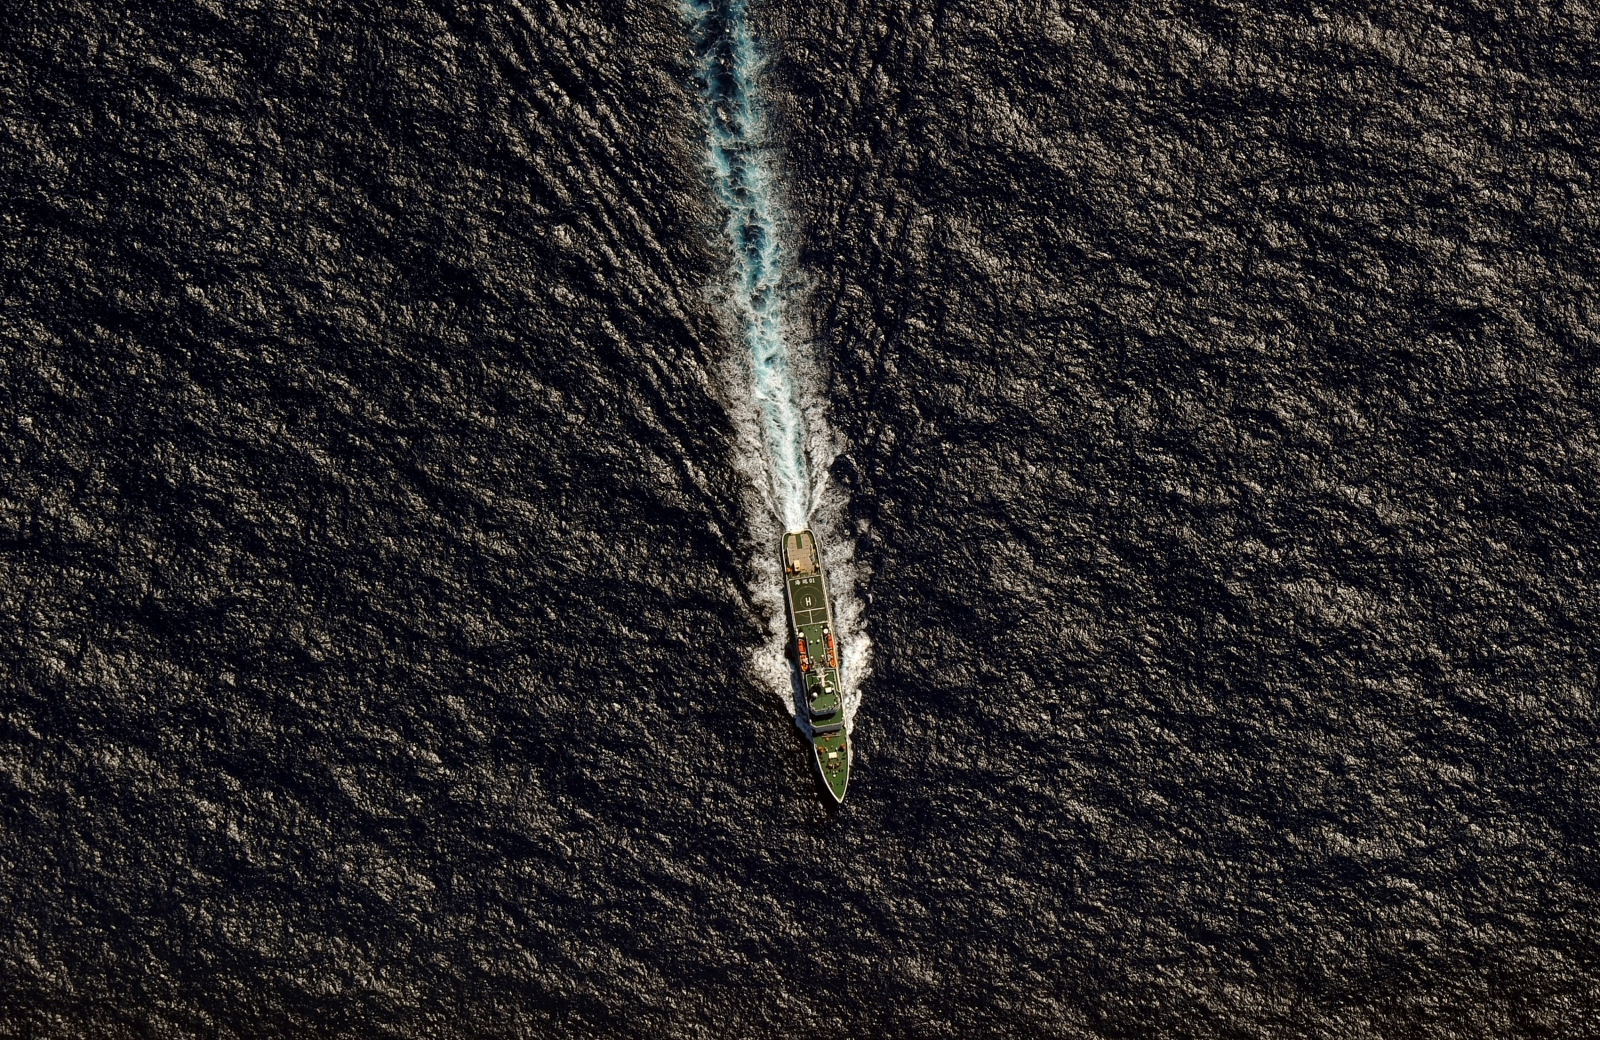 missing MH370 search operation